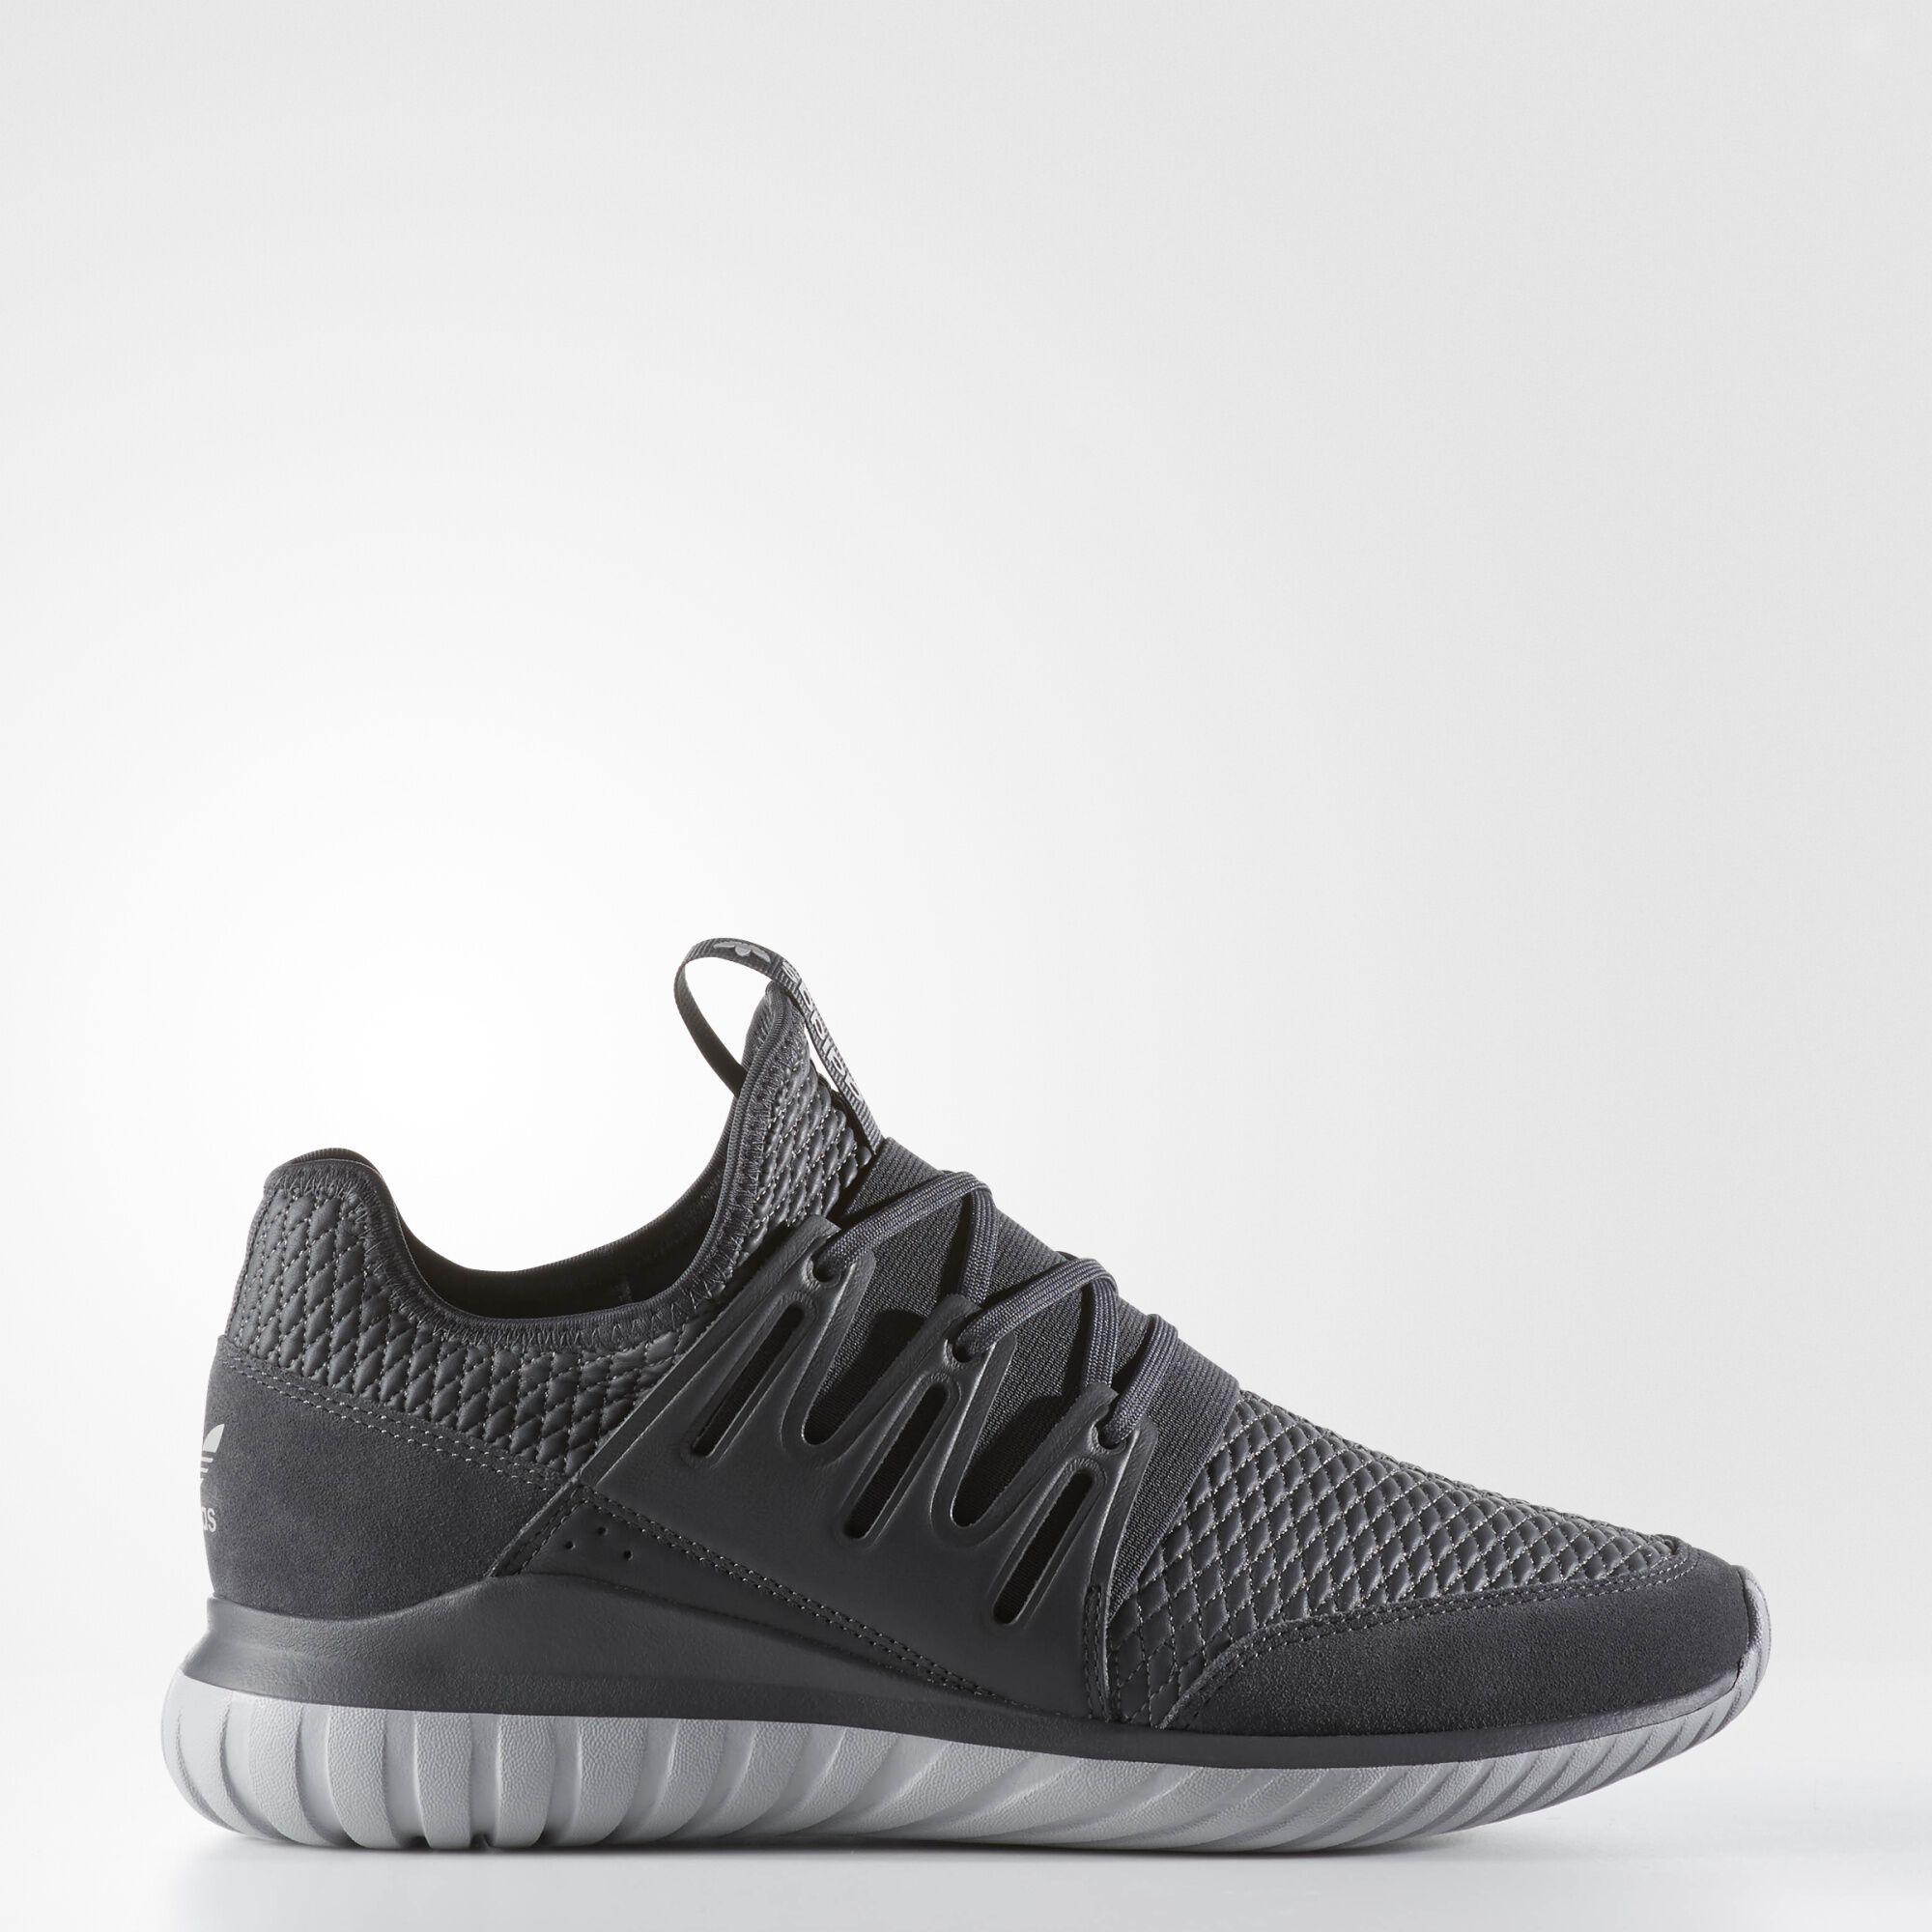 Adidas Tubular Radial Shadow Green